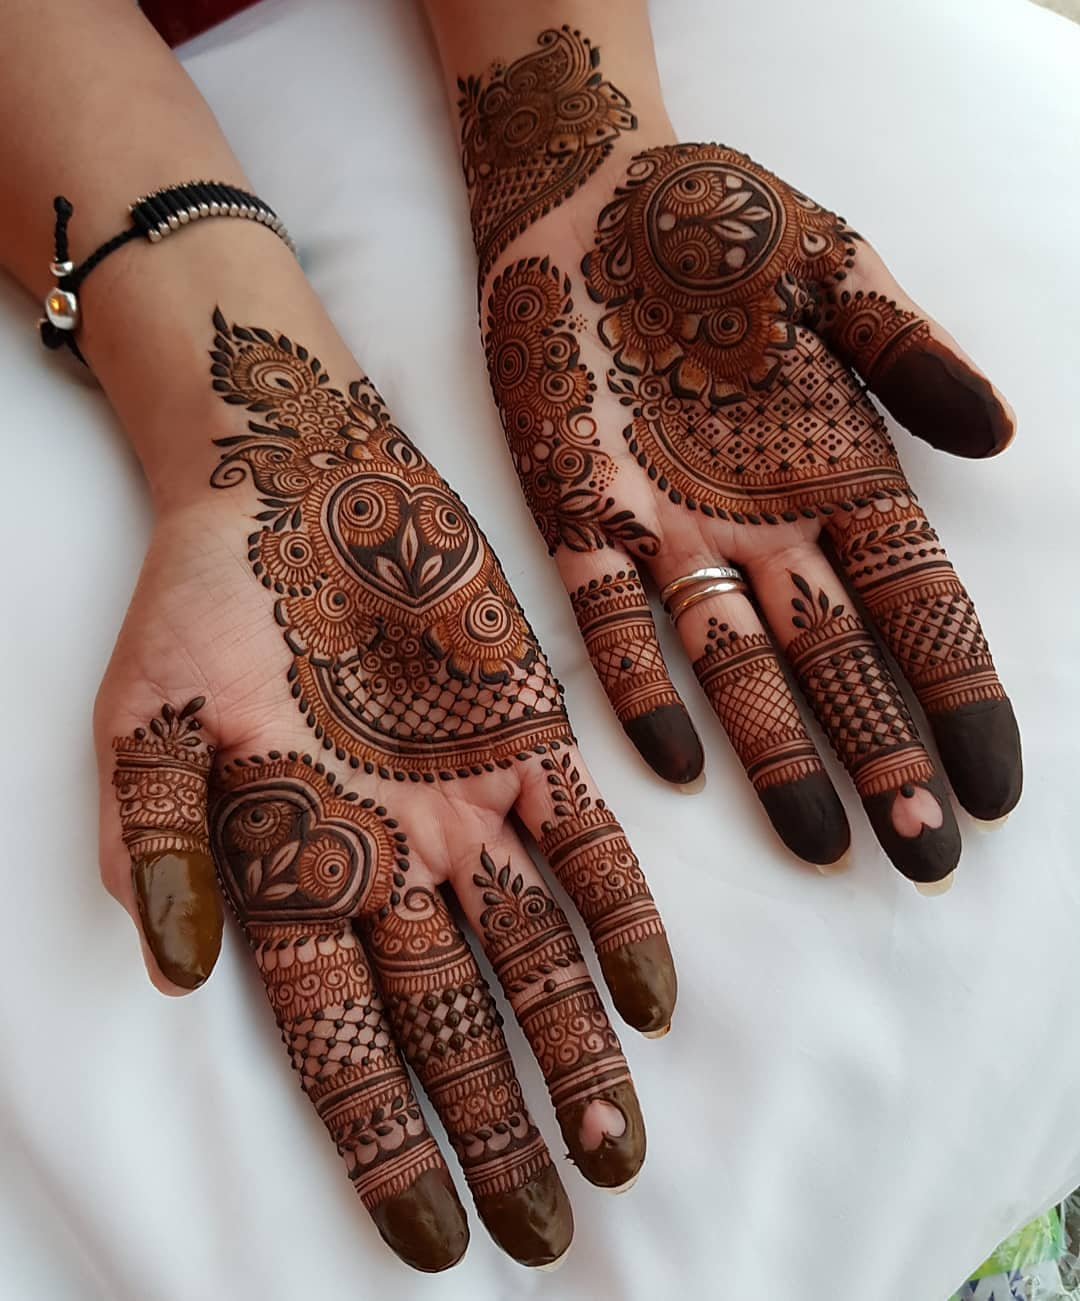 A treat to eyes: Beautiful & Simple Mehndi Designs for Hand